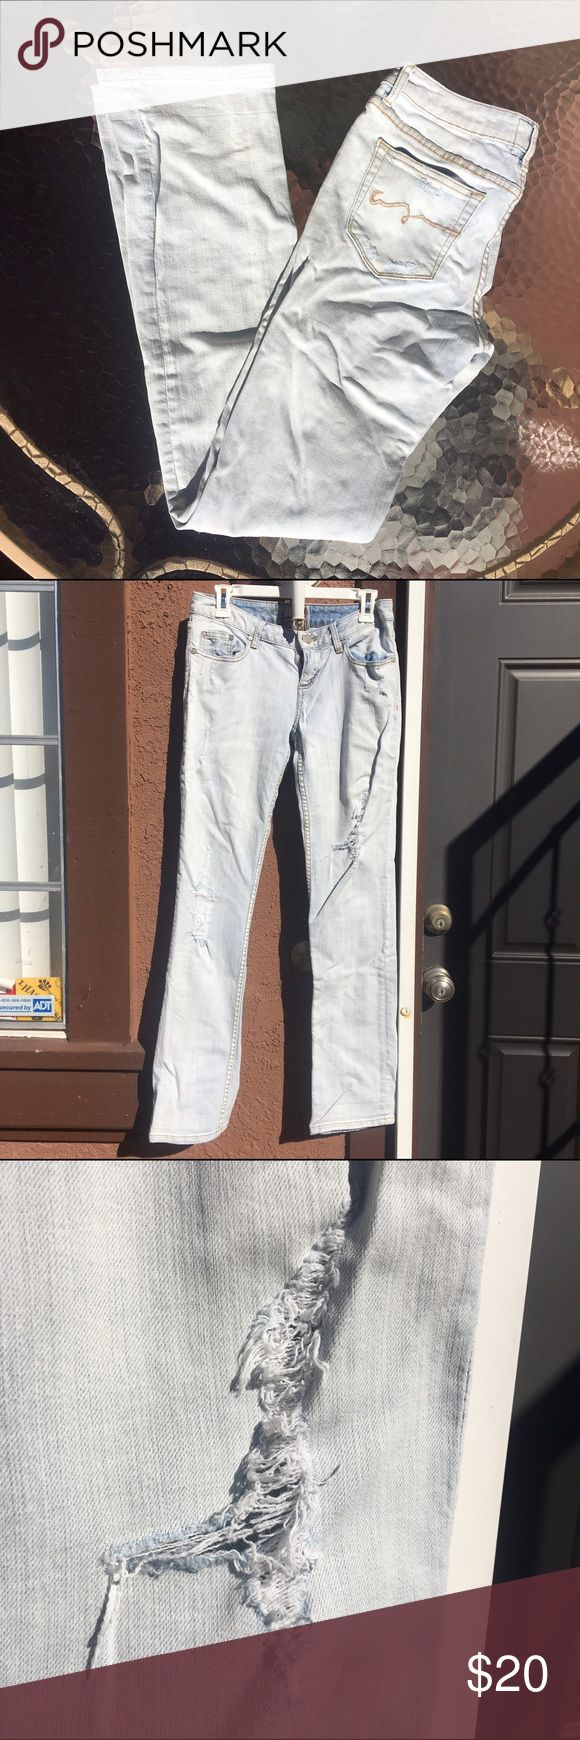 """American Rag Straight Cut Low Rise Jeans Light blue. Rise 7"""", inseam 32"""". Lightly distressed on the back pockets and the upper front of the jeans. Larger distressed sections on lower left thigh and right knee. 98% cotton, 2% spandex. American Rag Jeans Straight Leg"""